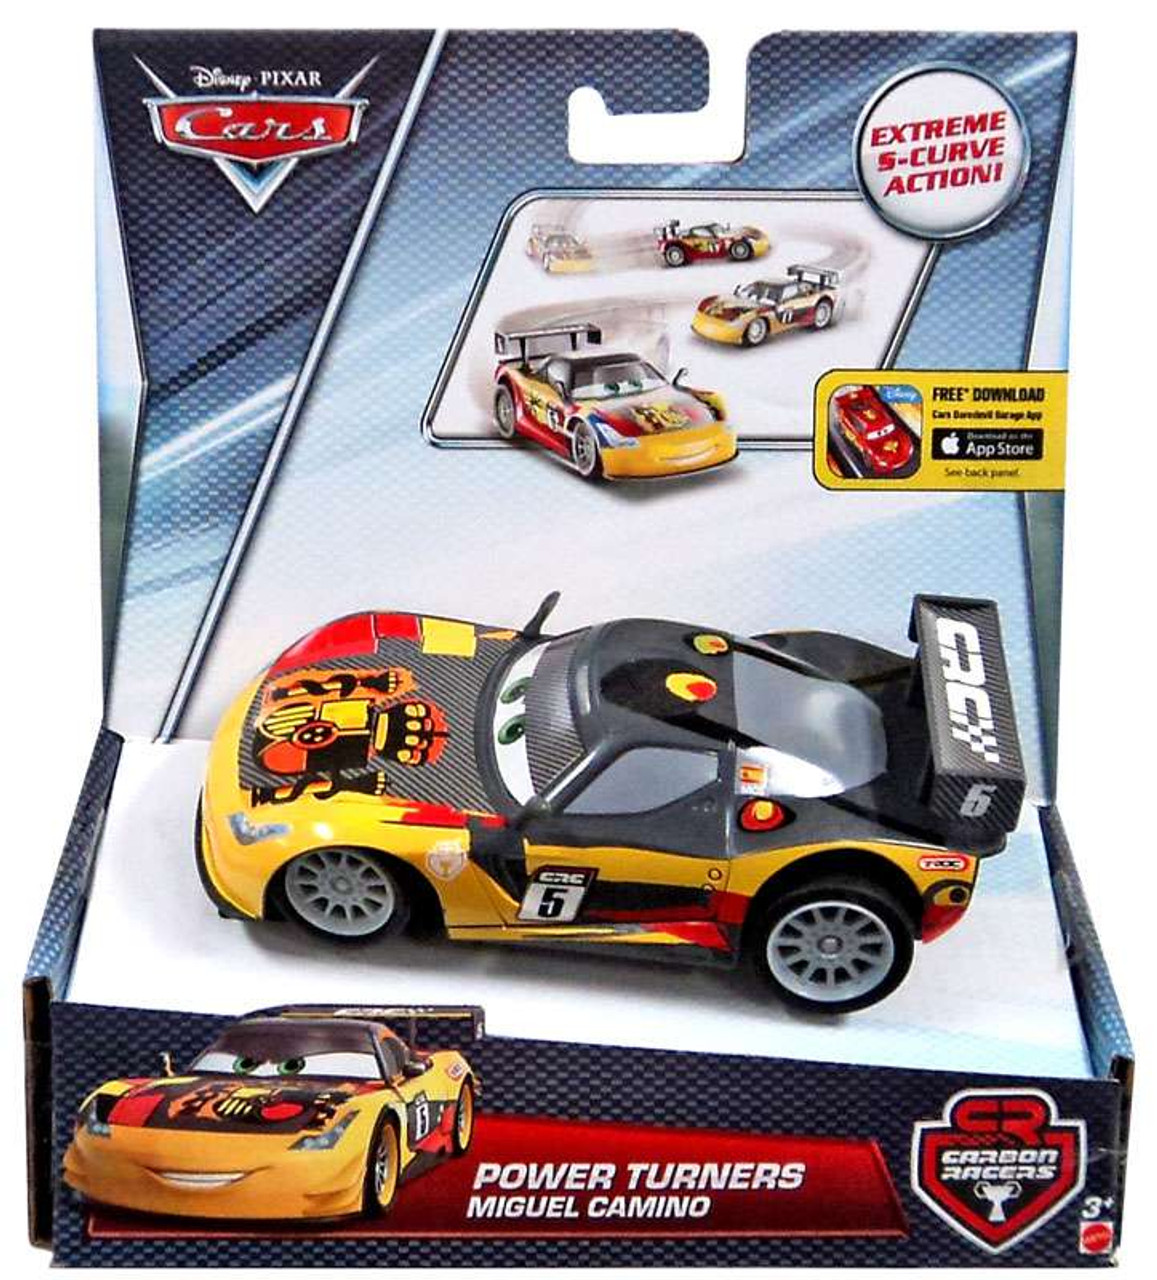 Car Toys Product : Disney cars carbon racers miguel camino power turners car